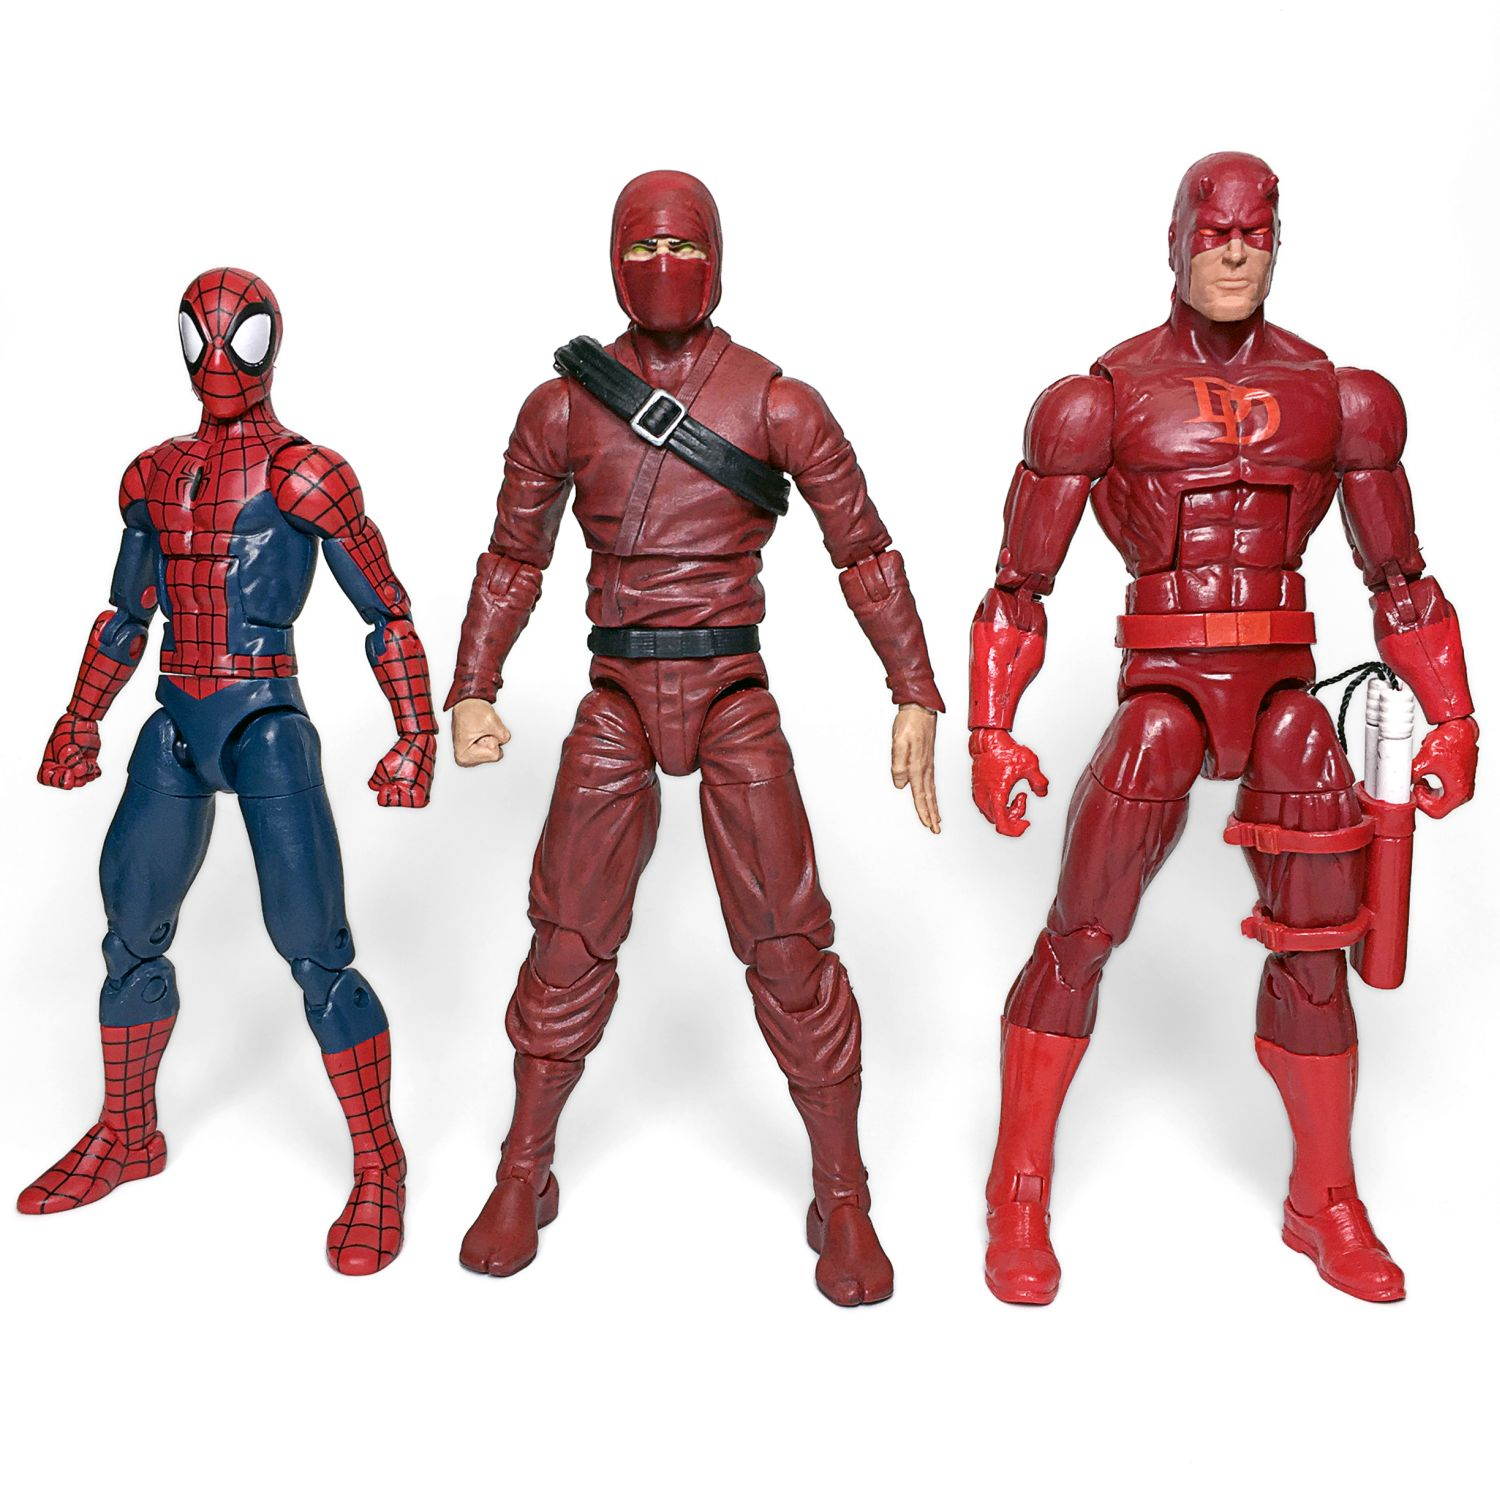 Fwoosh Articulated Icons Feudal Series Red Ninja Marvel Legends Scale Figure